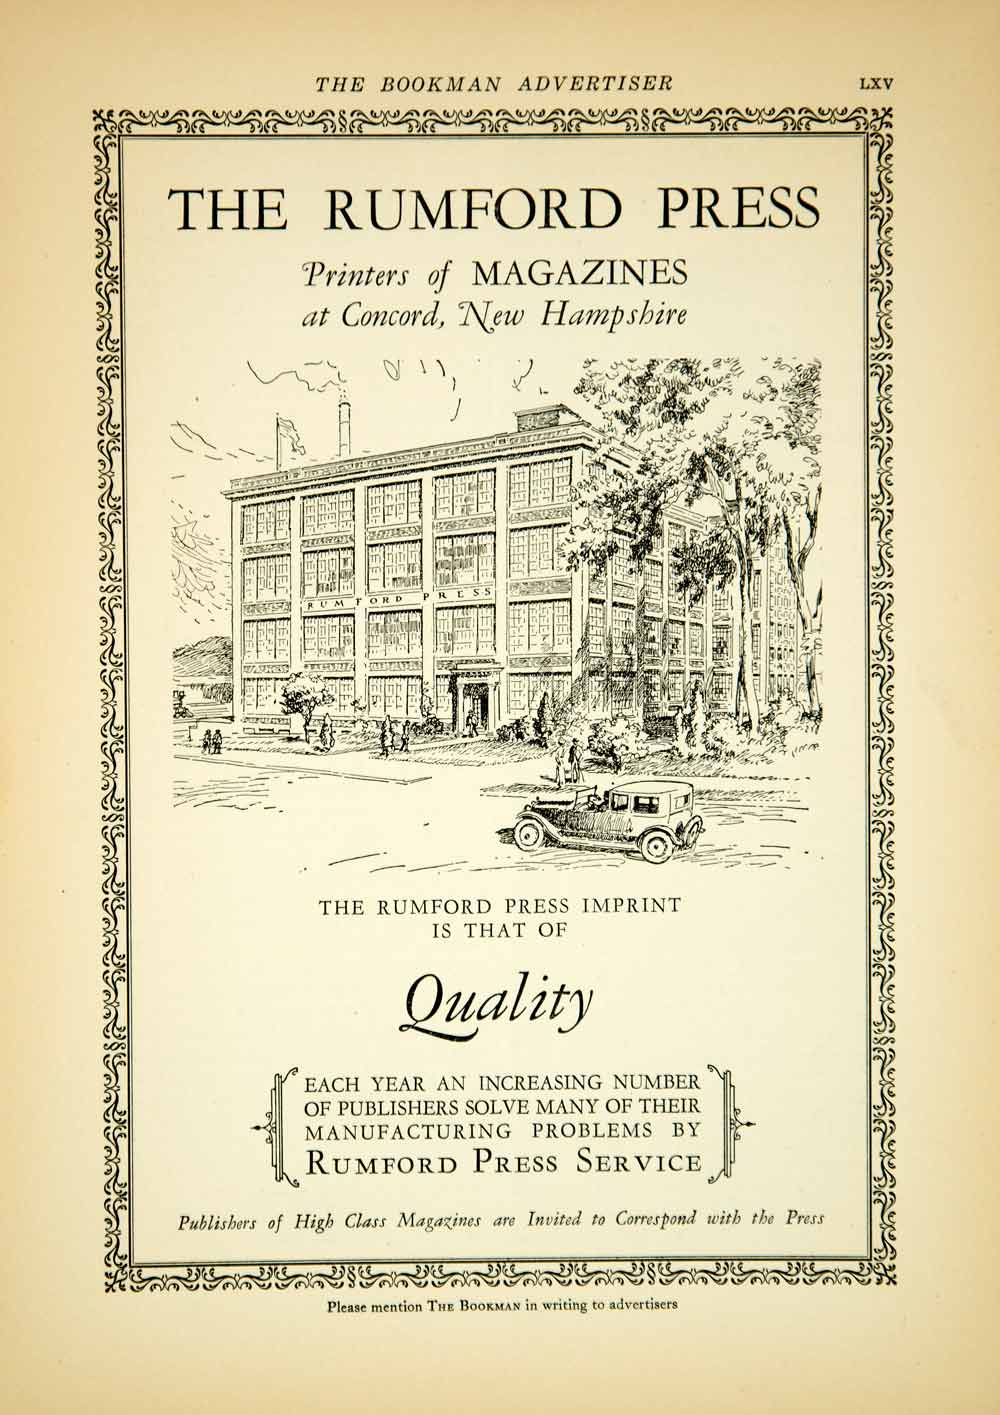 1927 Ad Vintage Rumford Press Concord New Hampshire Magazine Publisher YTB1